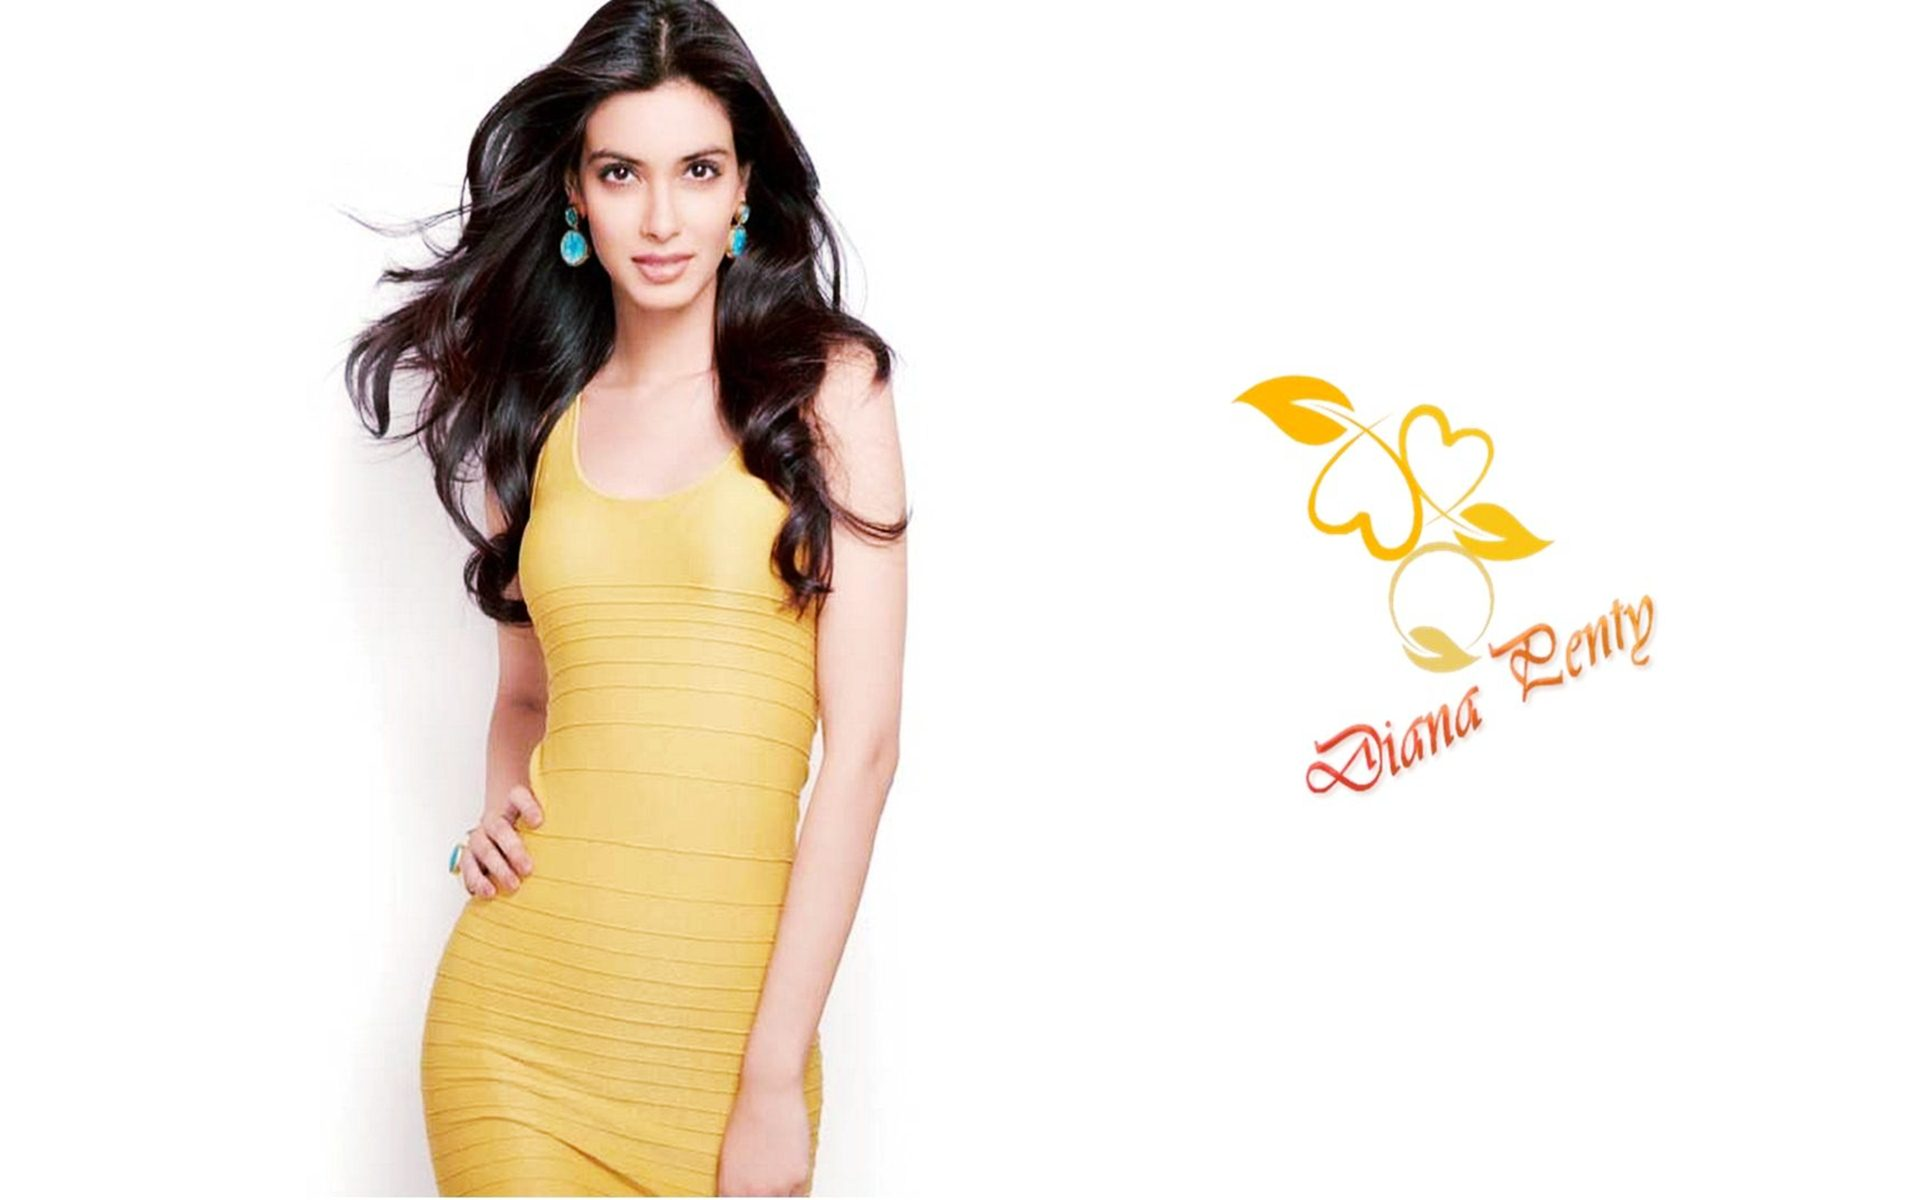 diana penty wallpapers high resolution and quality download